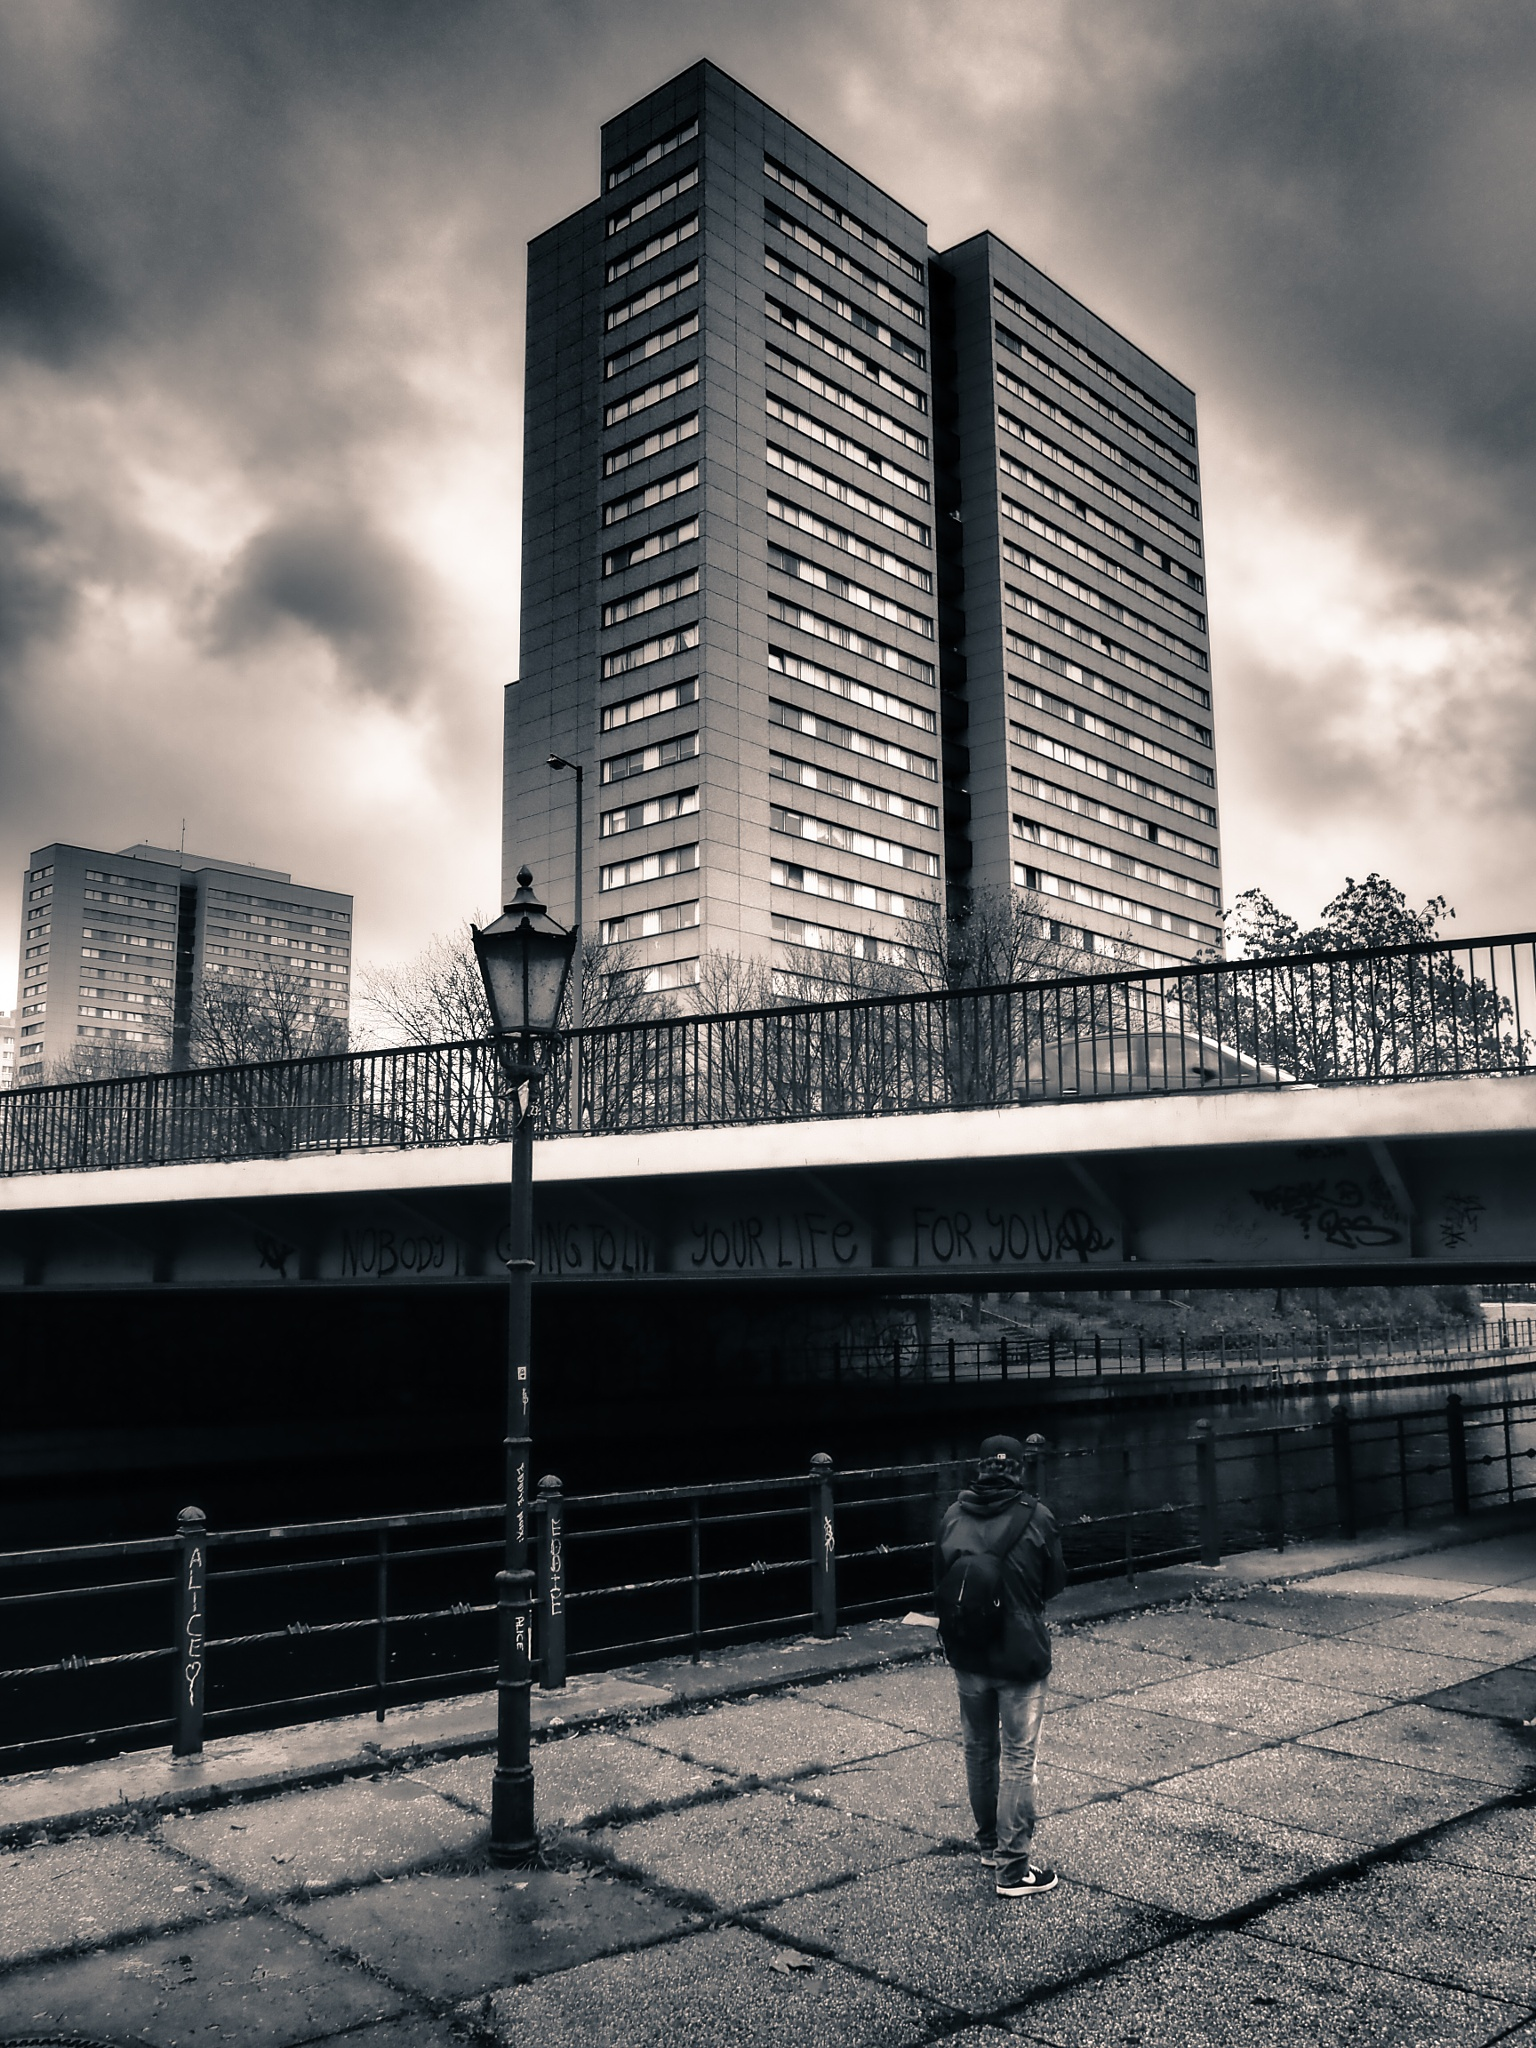 Berlin Bridge Building Black & White by Jeans Brown Photography / Jens Schwarz